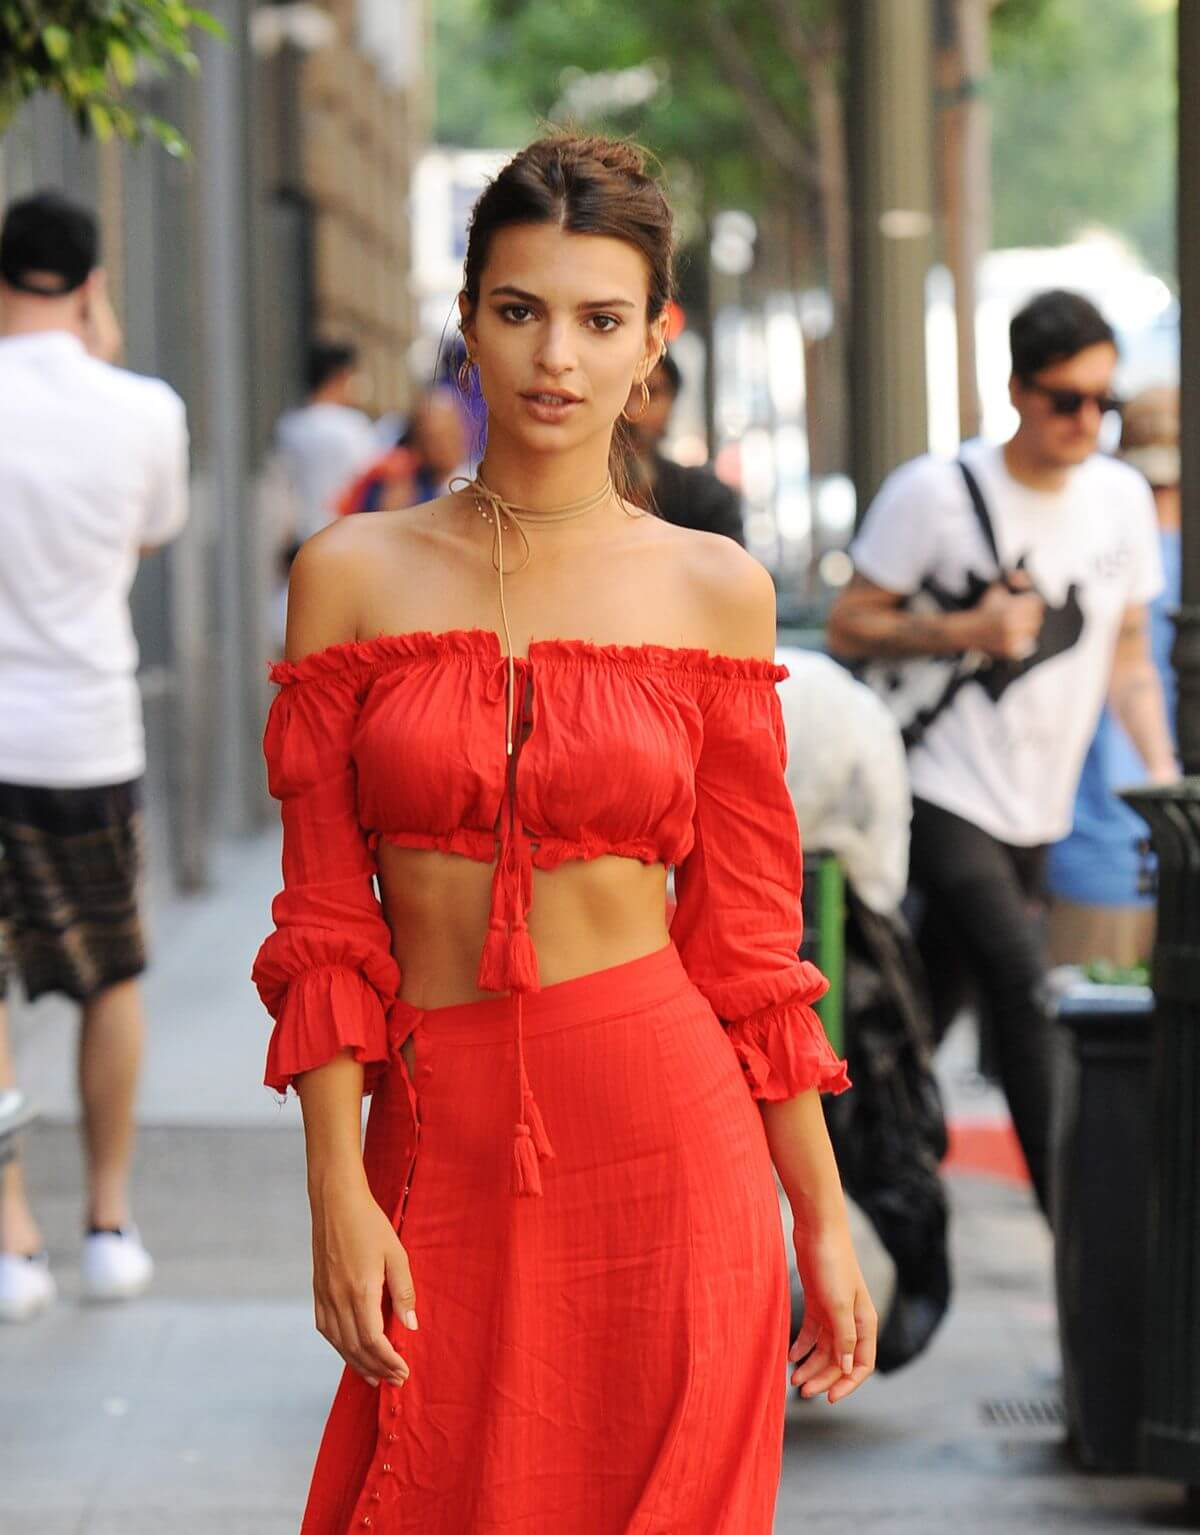 Emily Ratajkowski Booty Out and About in Los Angeles